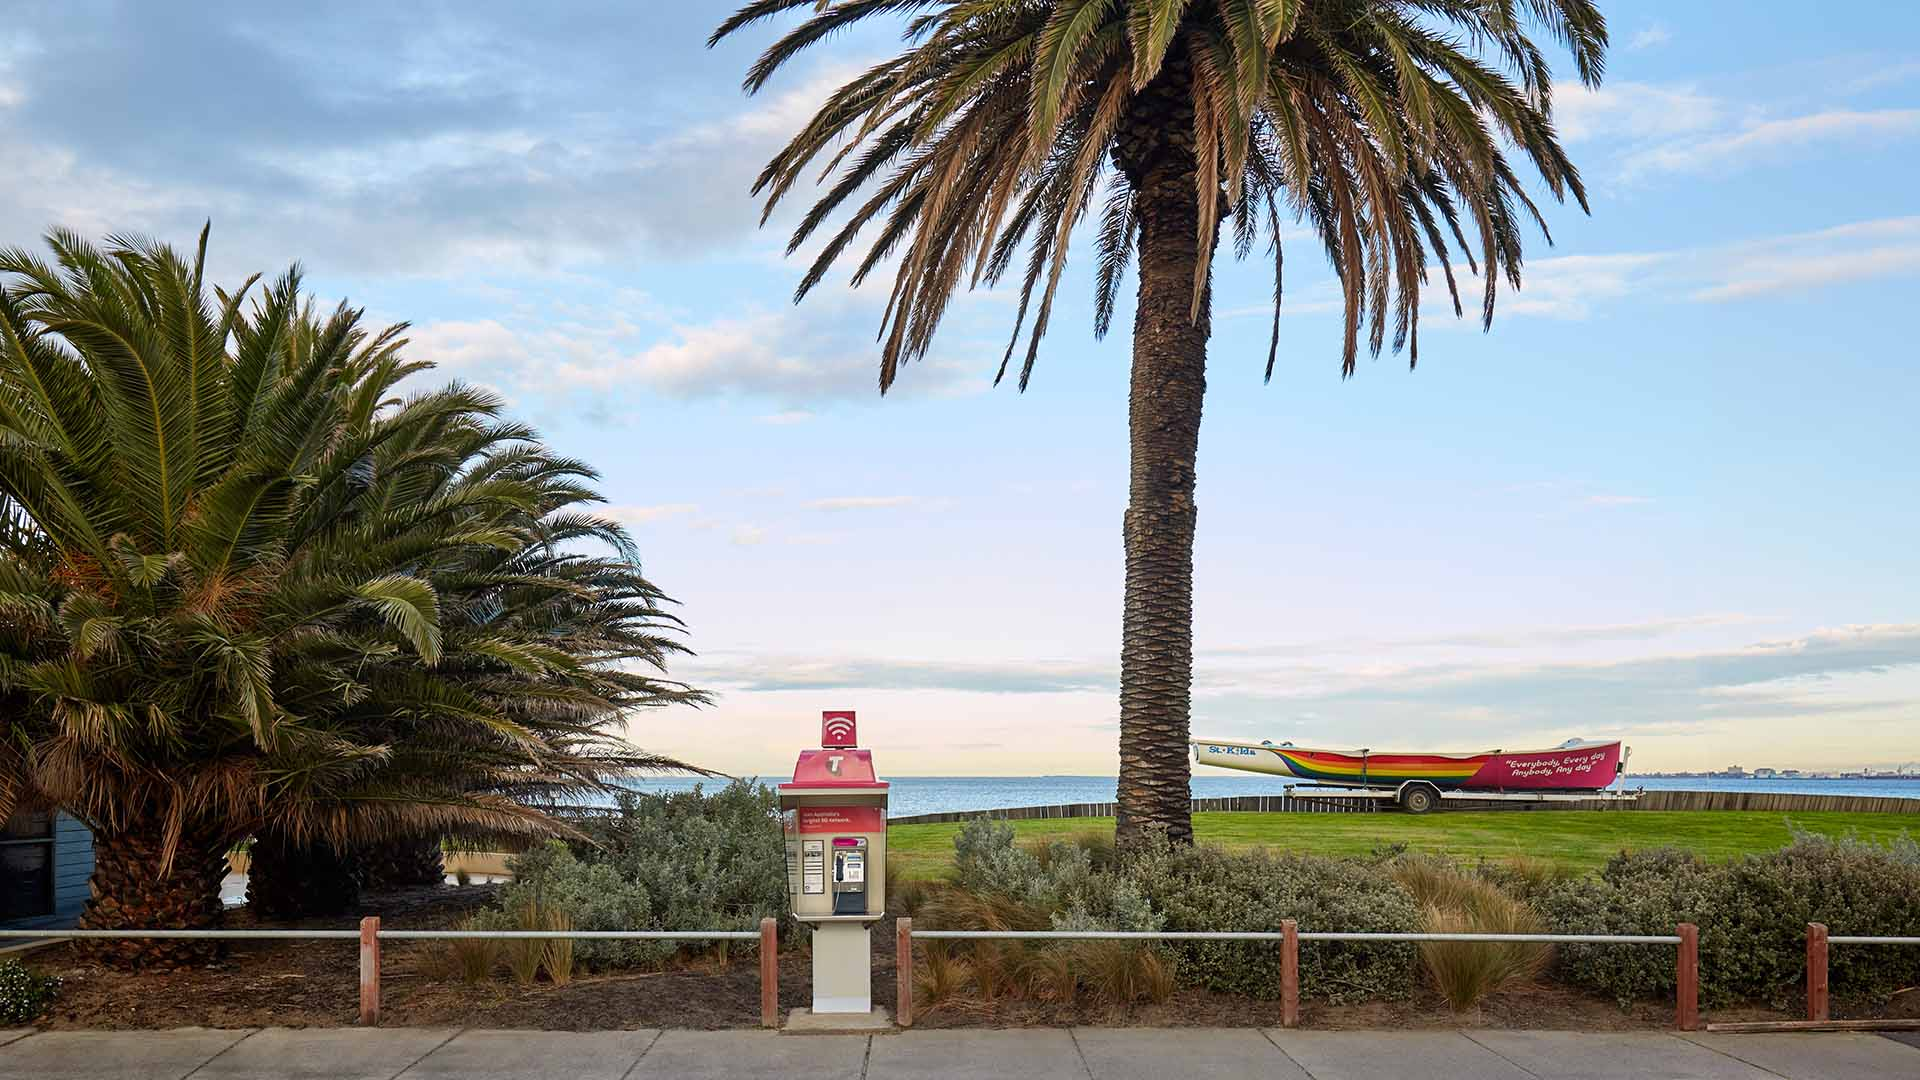 You Can Now Make Free Local, National and Mobile Calls From Any Telstra Payphone